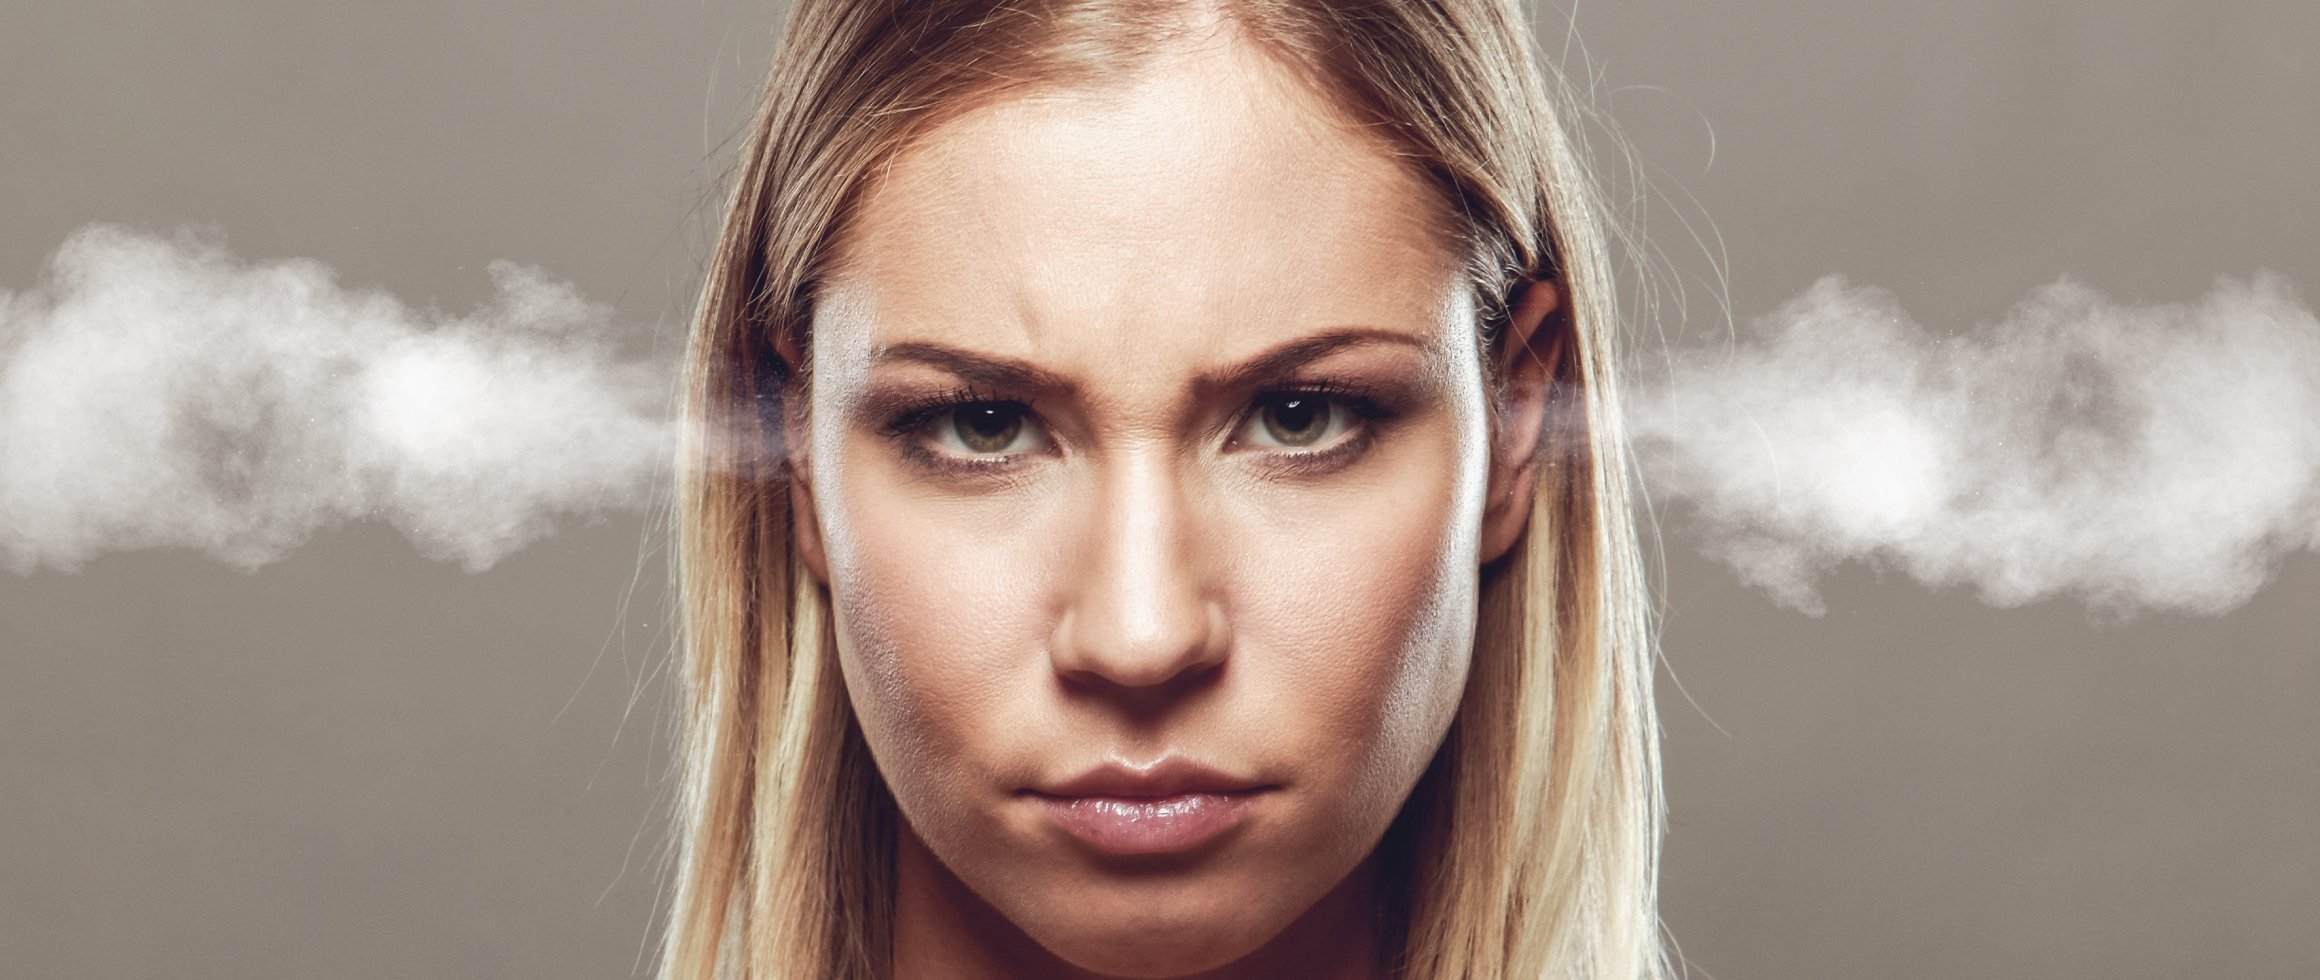 5-Steps-To-Controlling-Anger